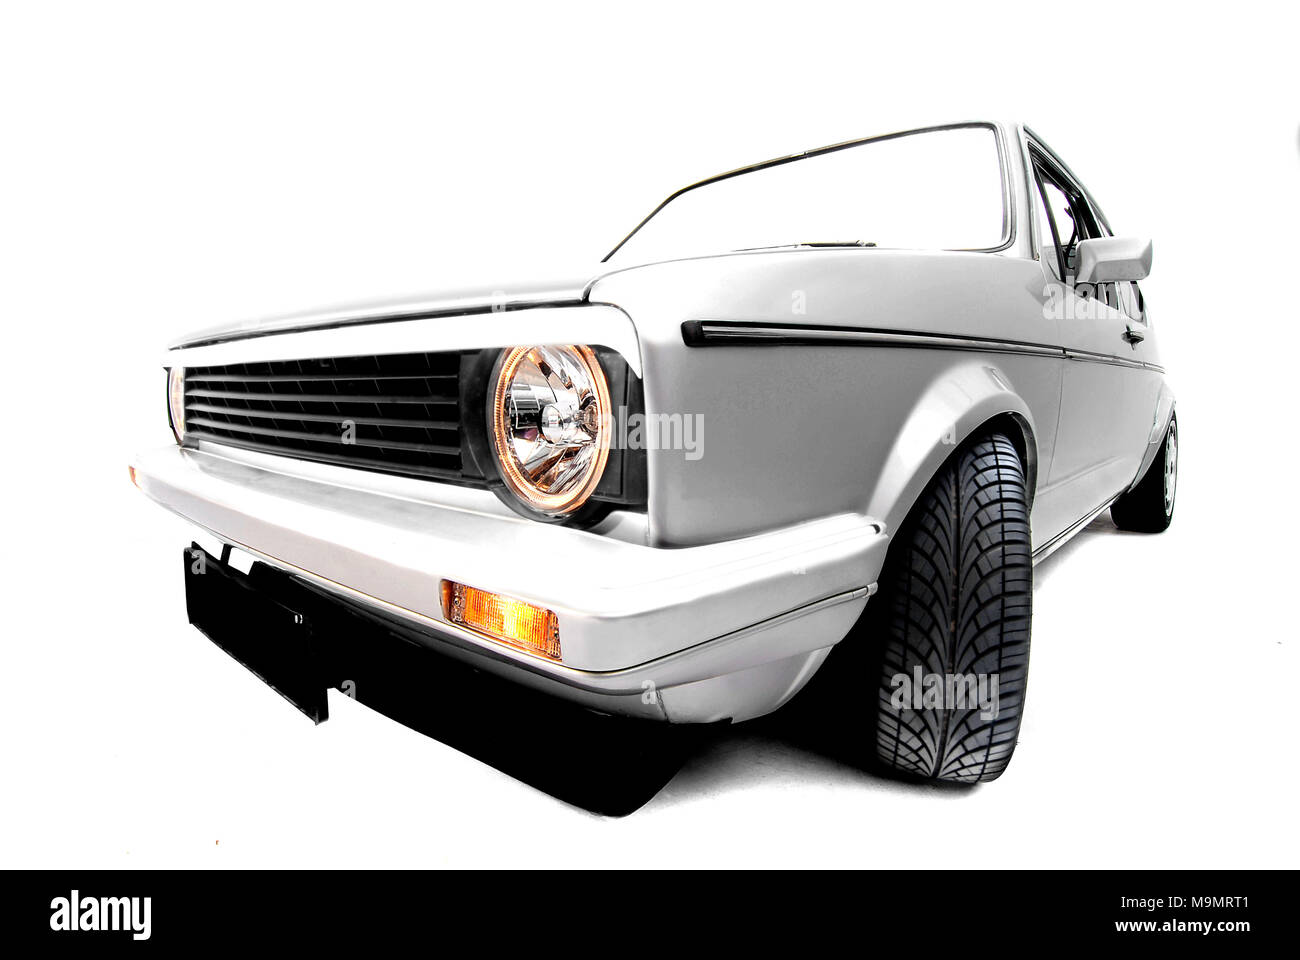 Vw Golf 1 High Resolution Stock Photography And Images Alamy